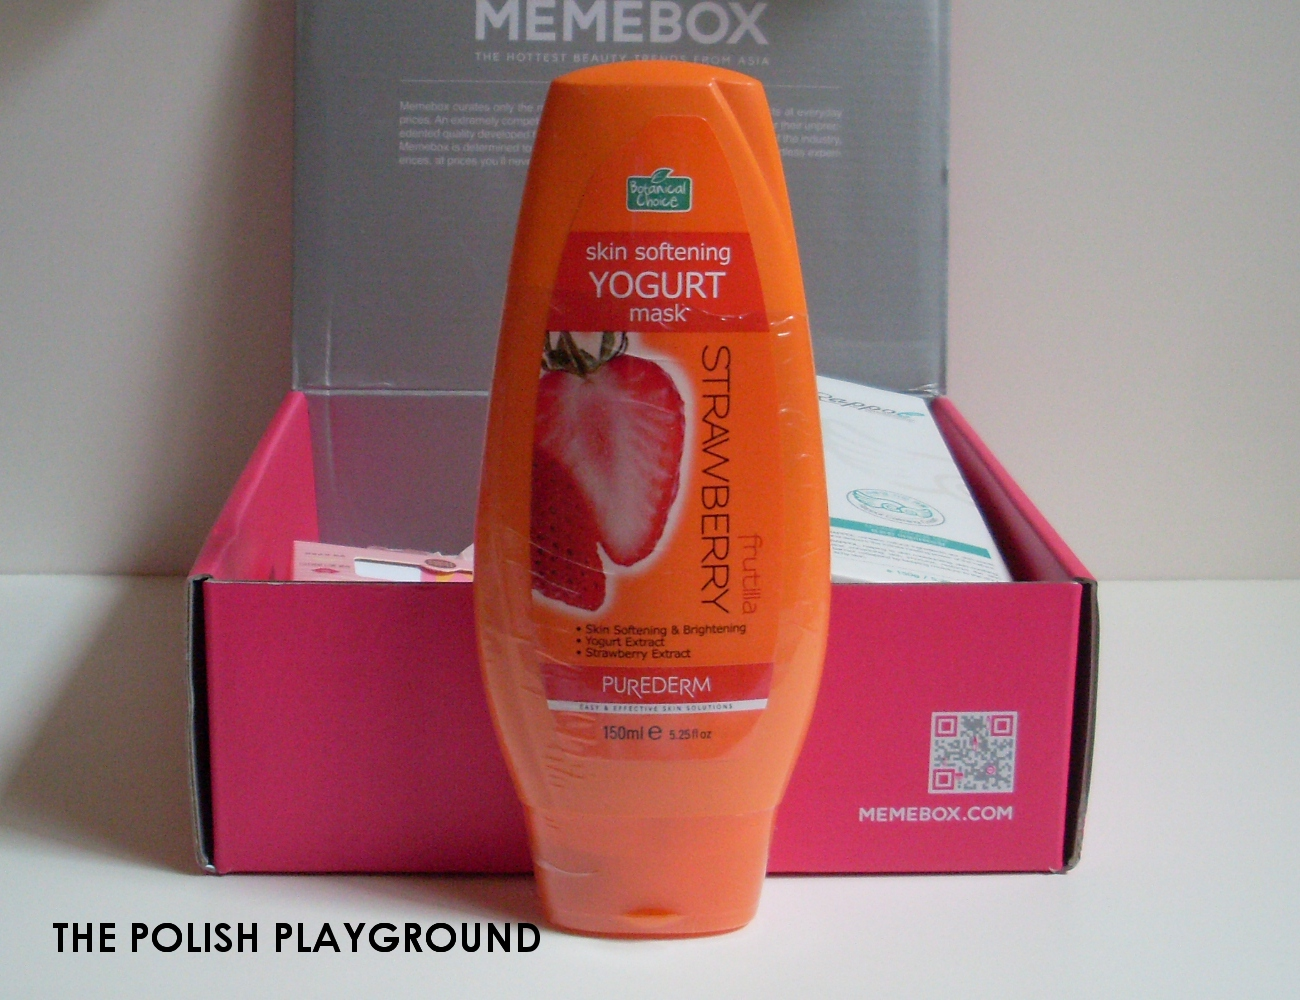 Memebox Superbox #54 Yogurt Cosmetics Unboxing - Purederm Skin Softening Yogurt Mask Strawberry